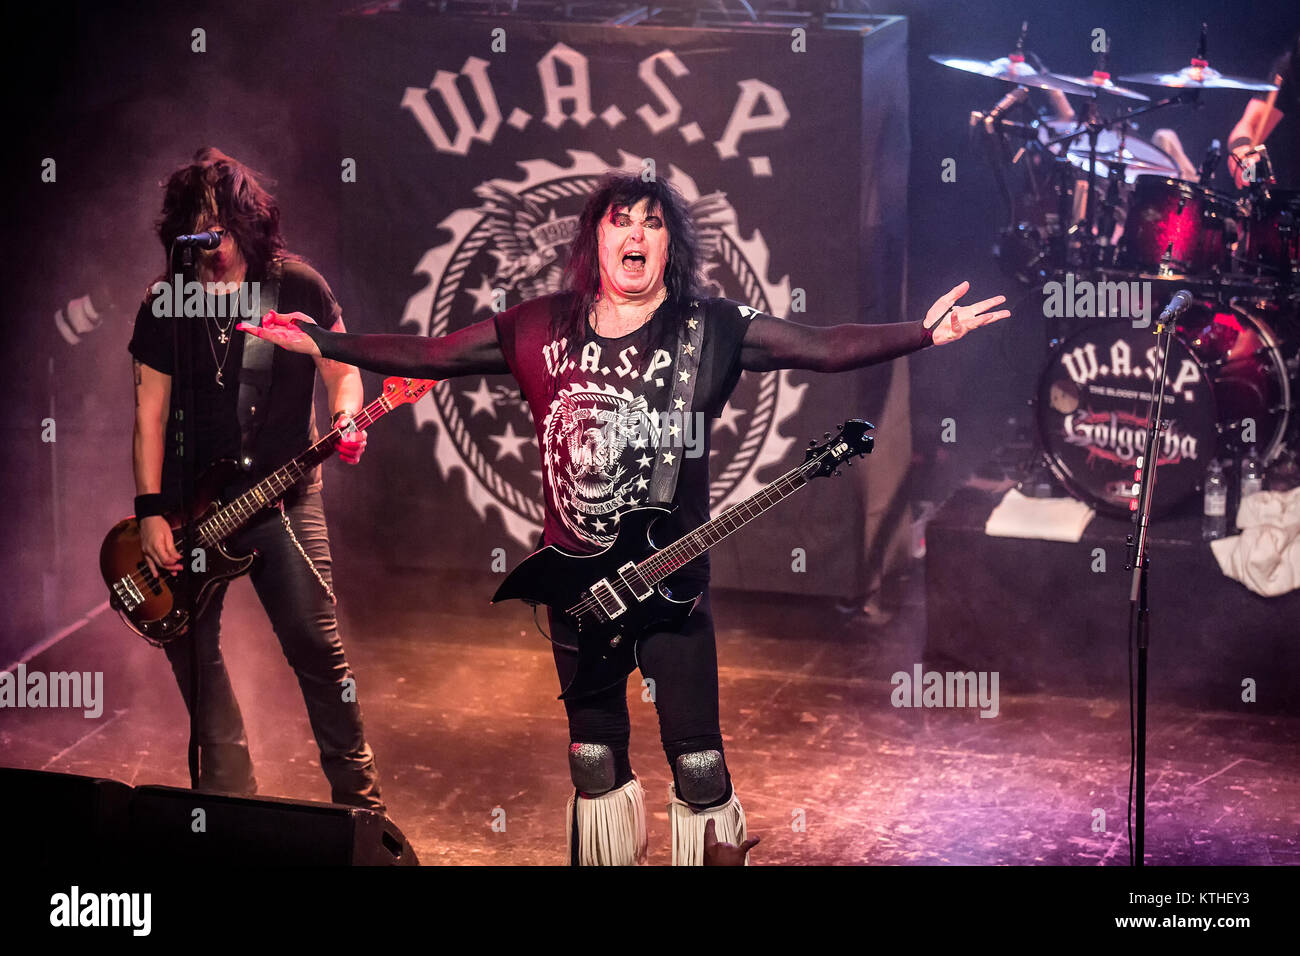 The American glam metal band W A S P  performs a live